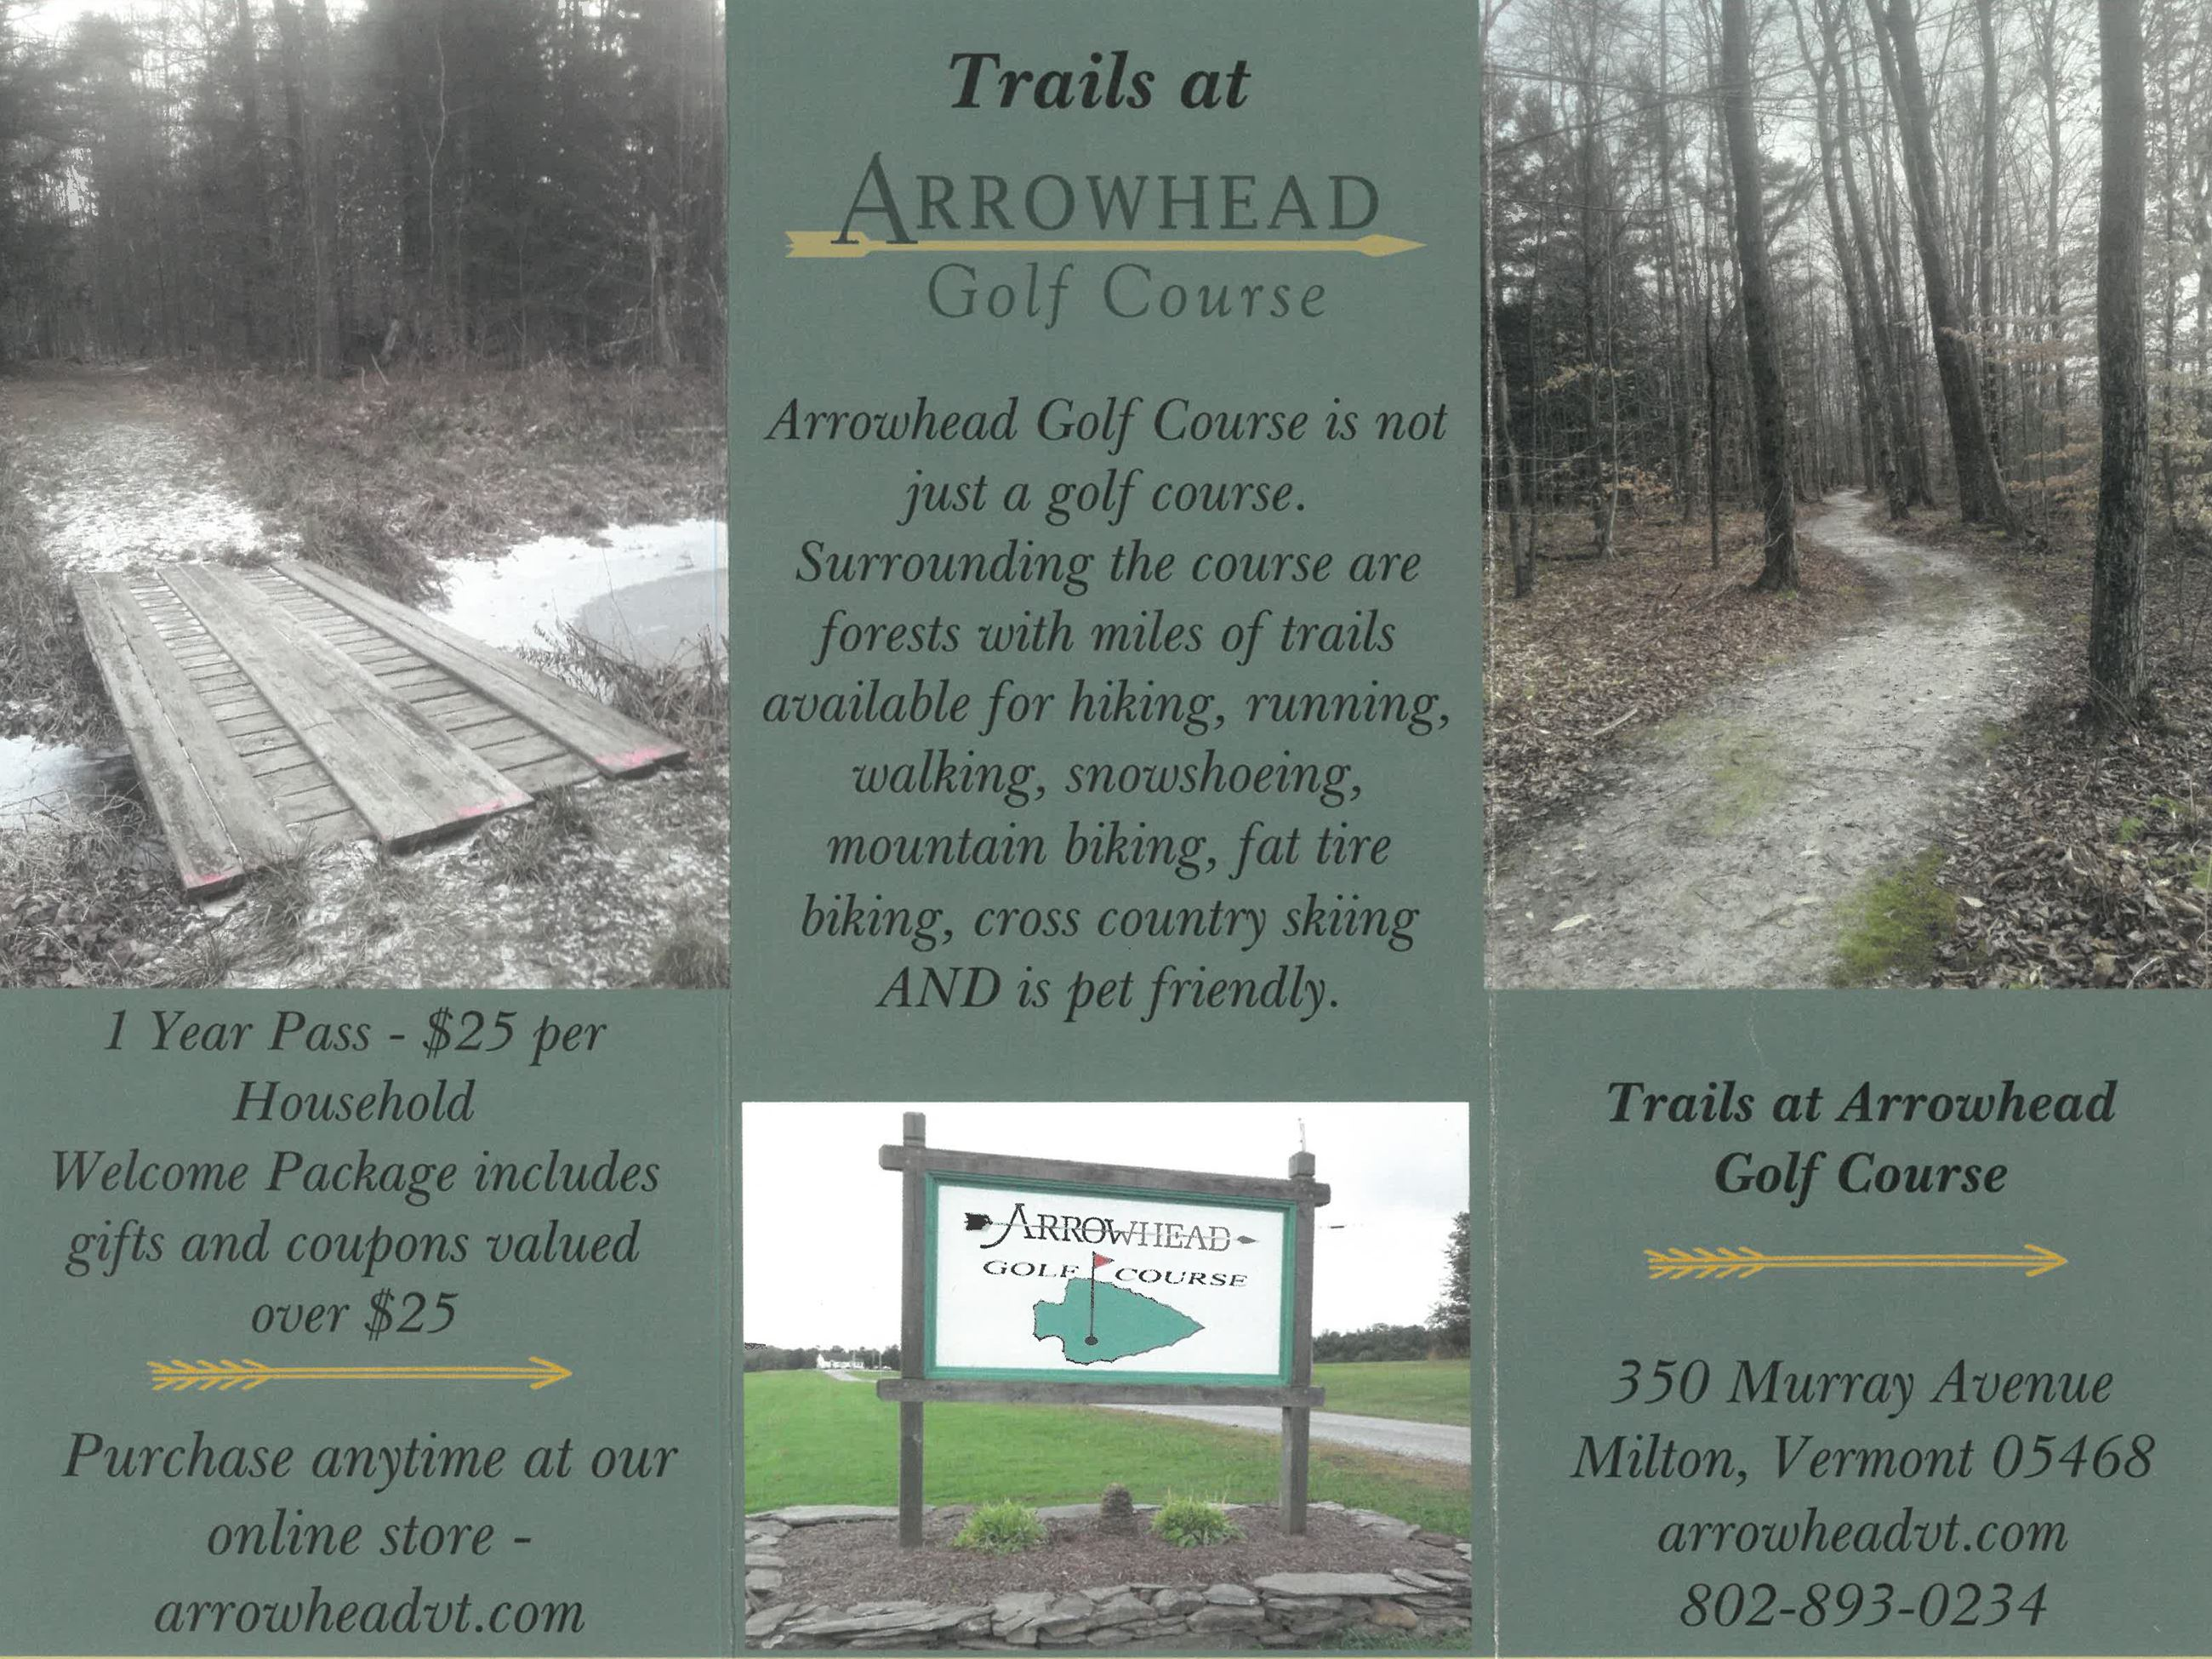 Trails at Arrowhead Golf Course Brochure and Map